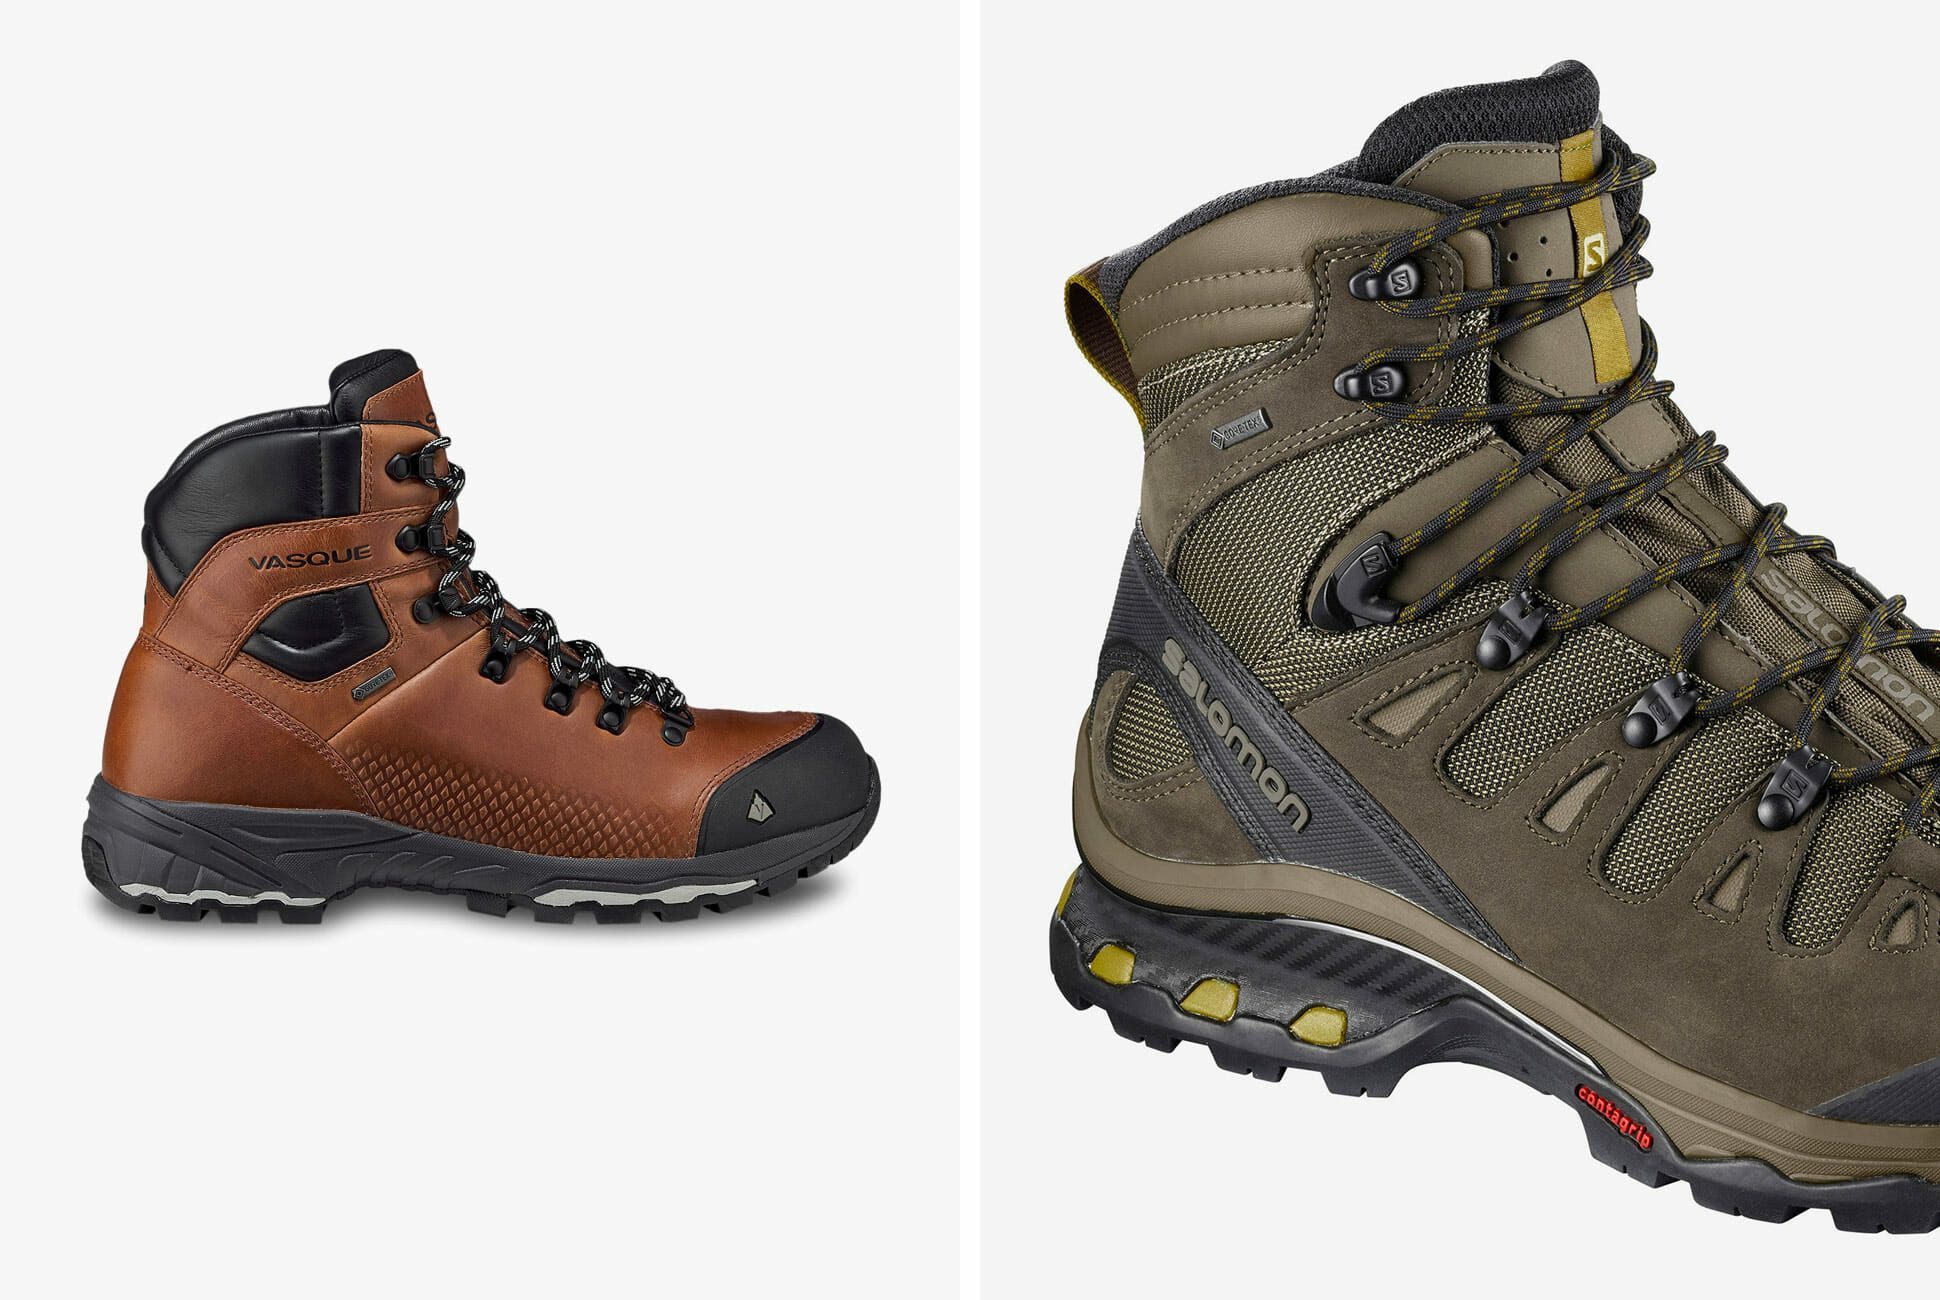 best deals on hiking boots